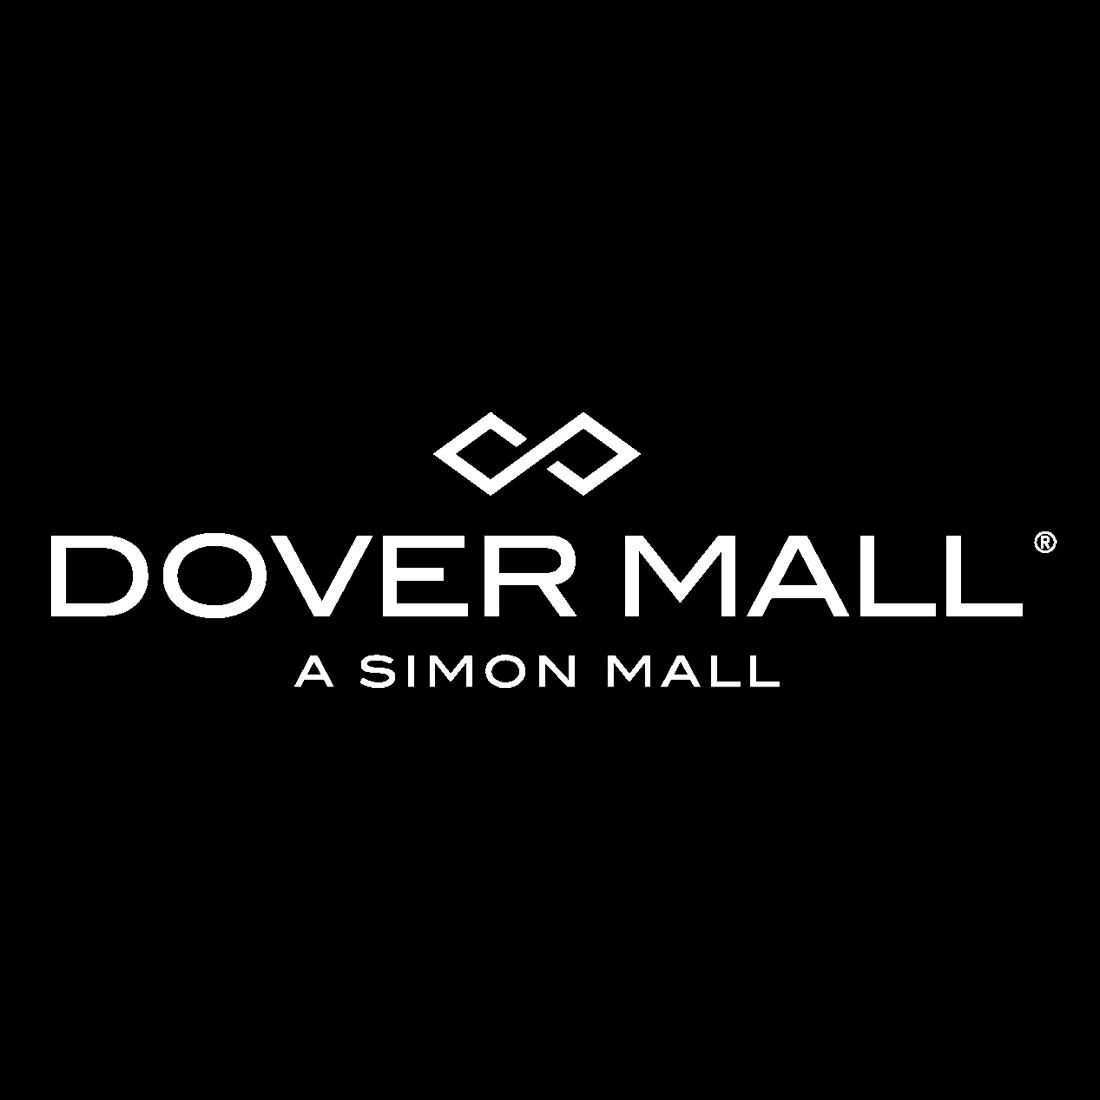 Dover Mall